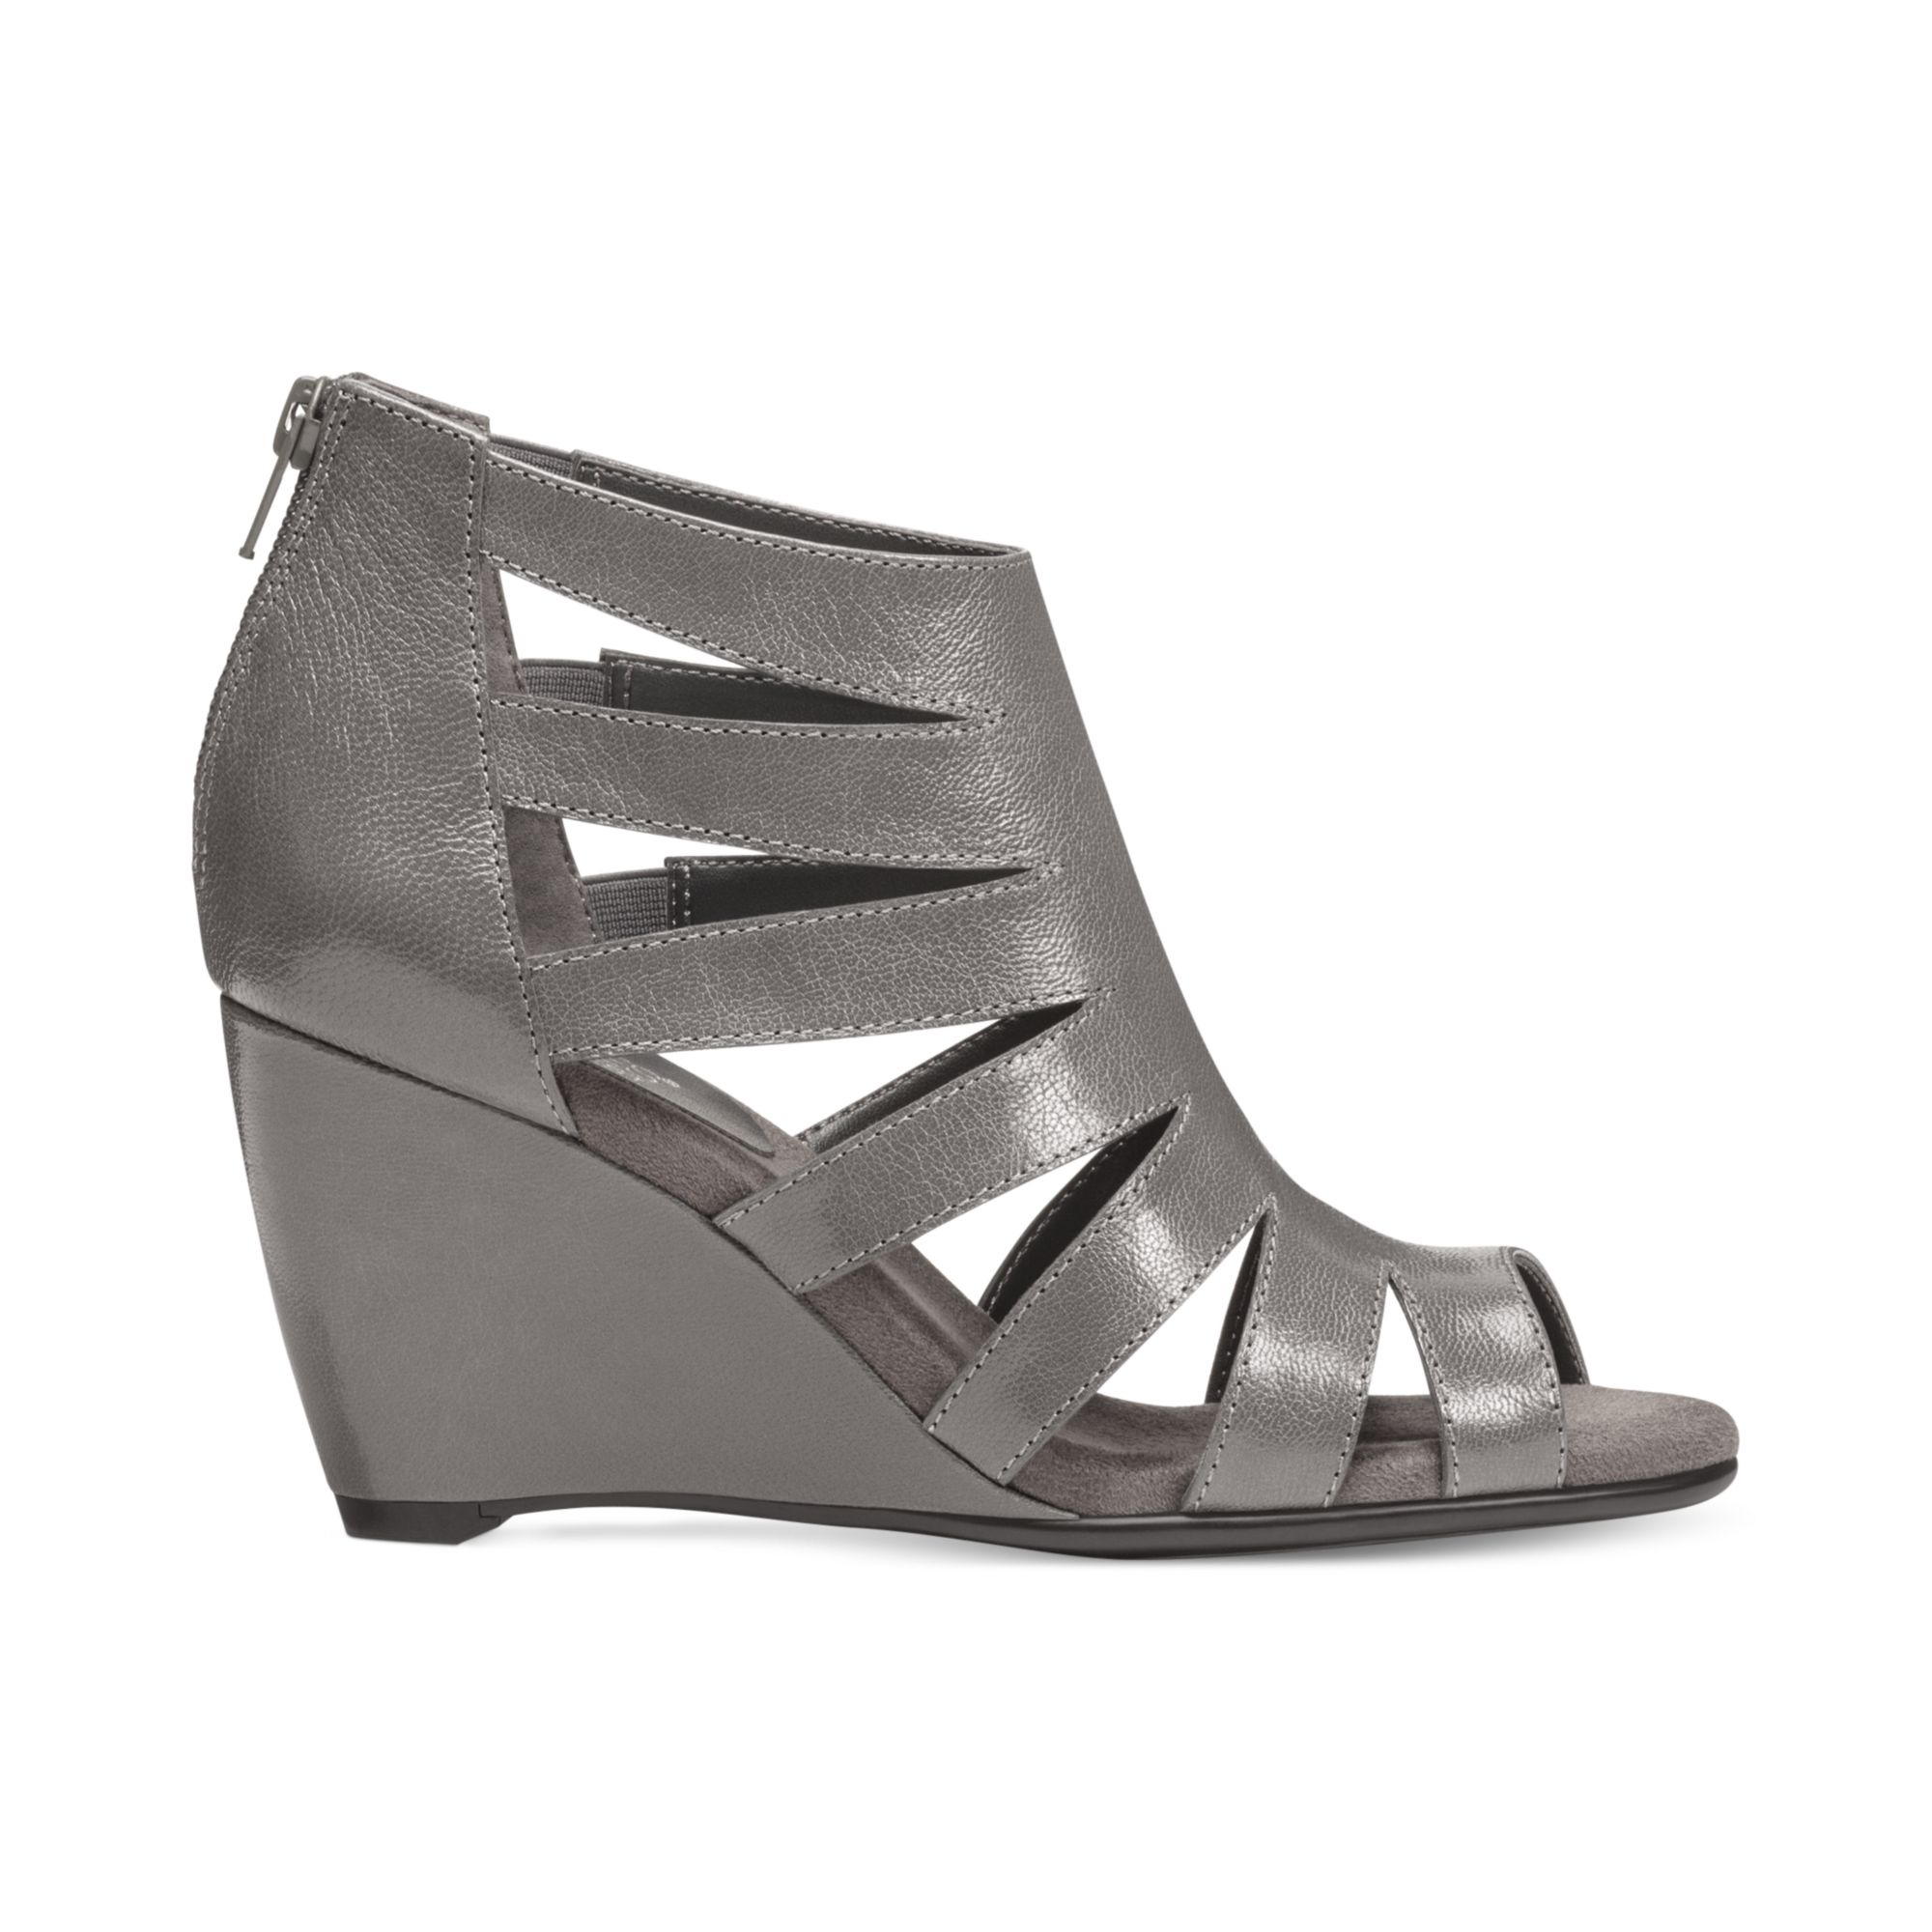 Aerosoles Southern Lights Wedge Sandals in Gray | Lyst